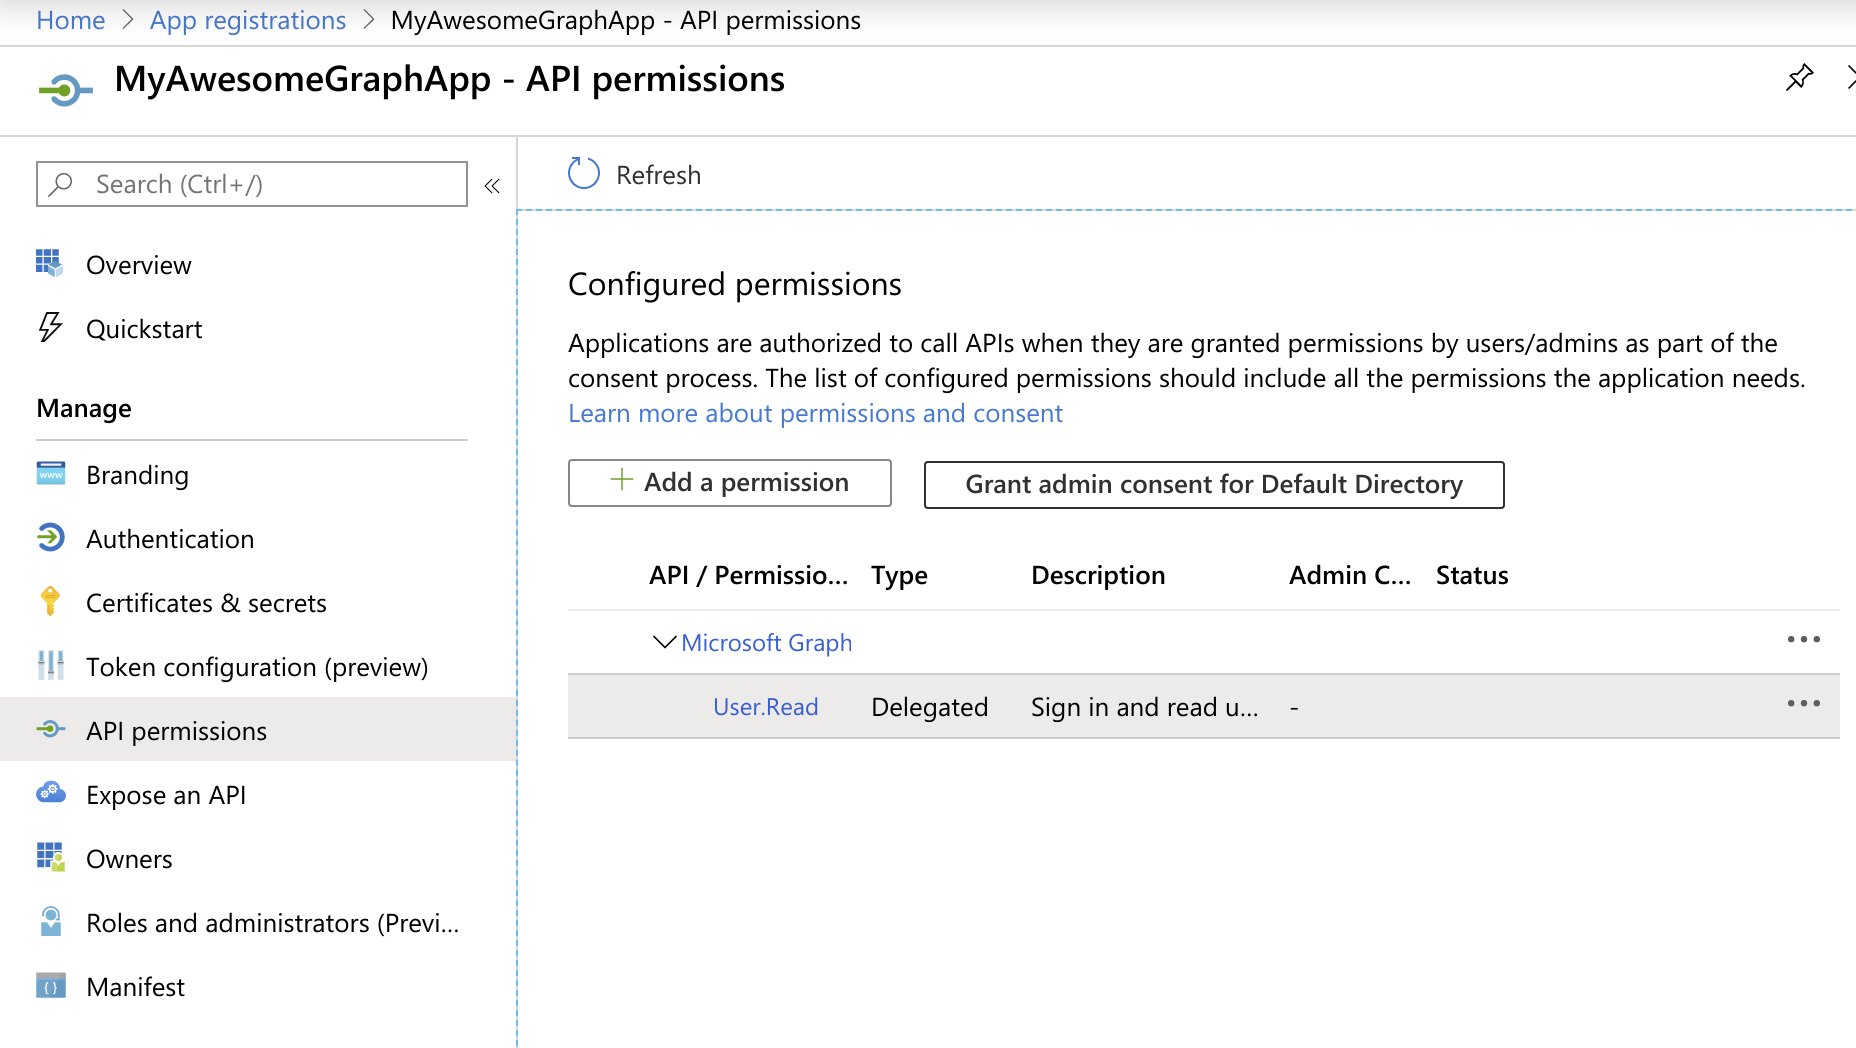 API permissions overview